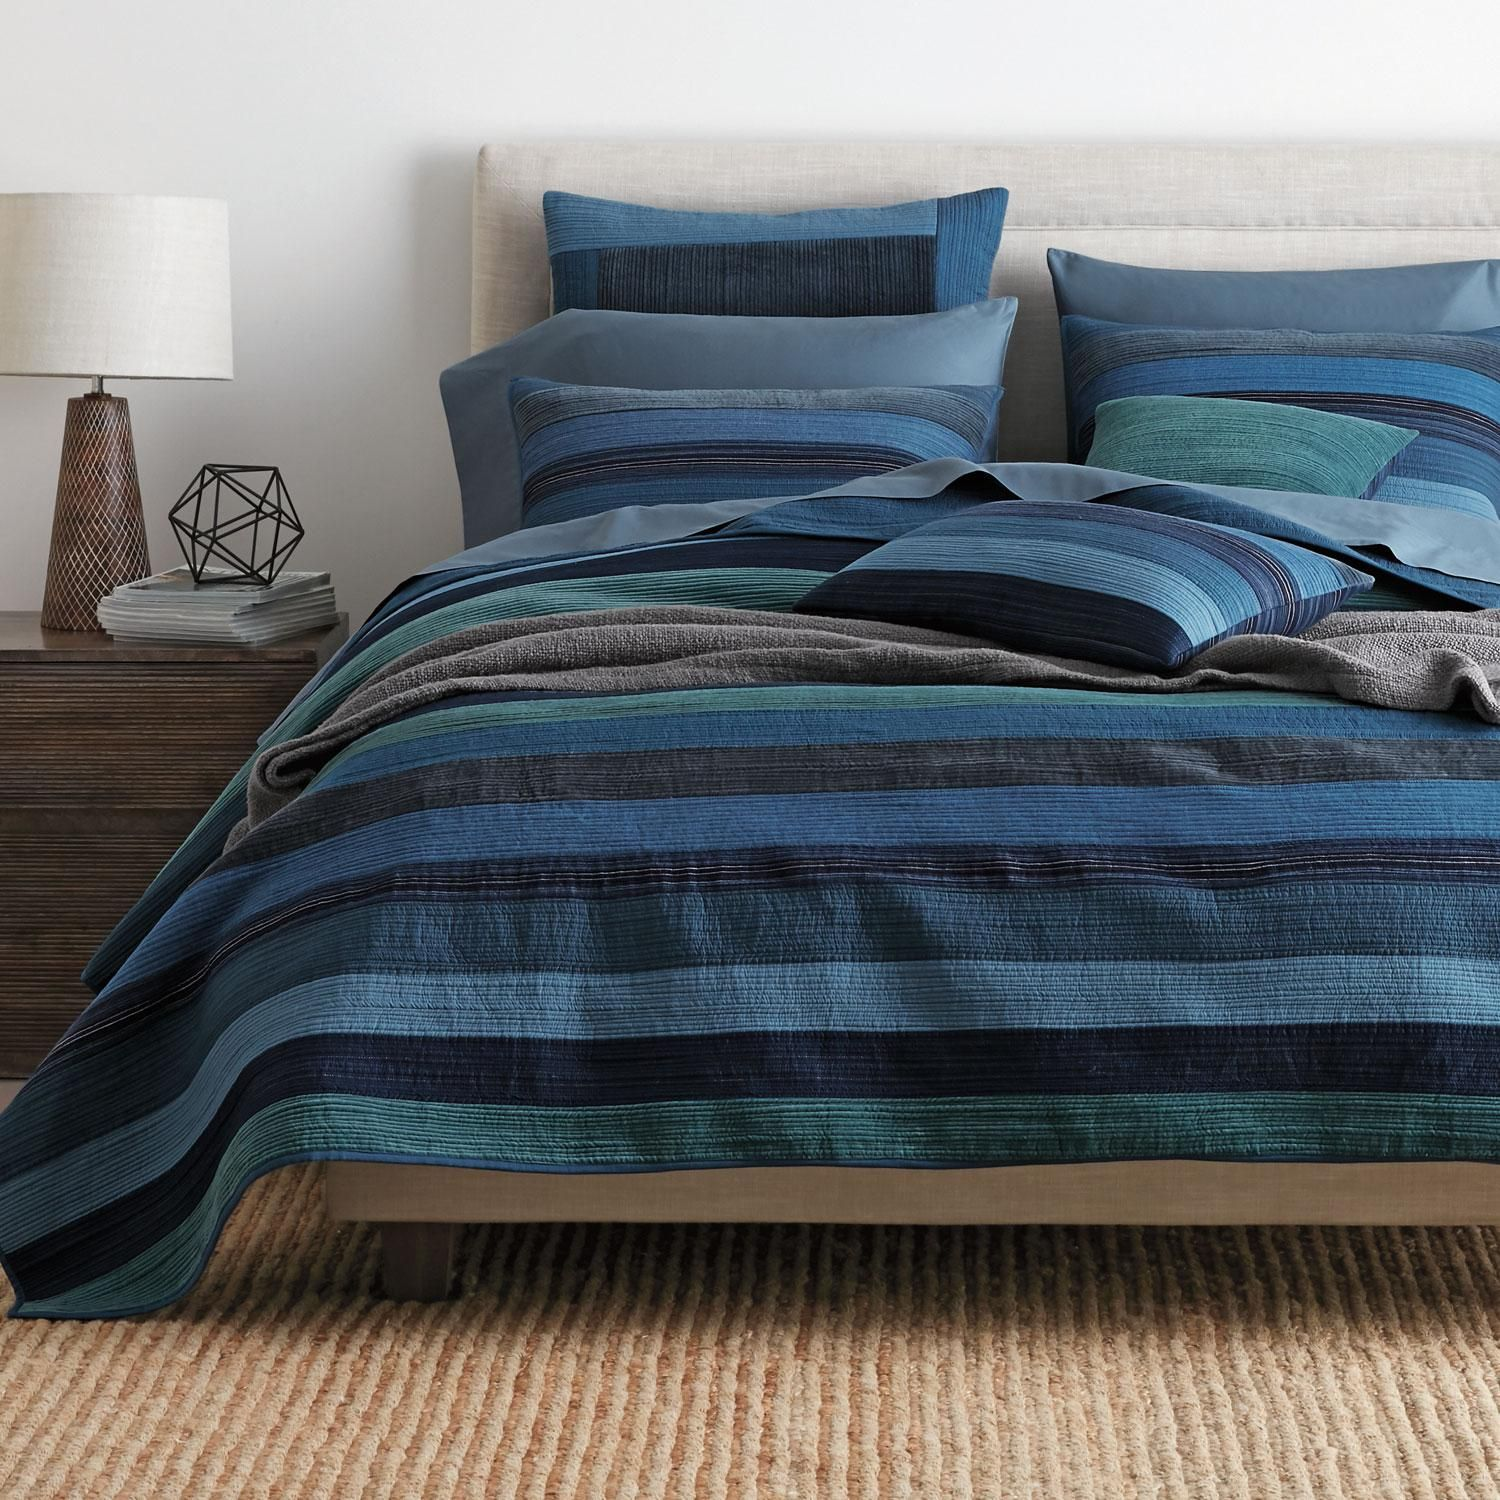 Weston Blue Stripe Quilt at The Company Store Full/Queen